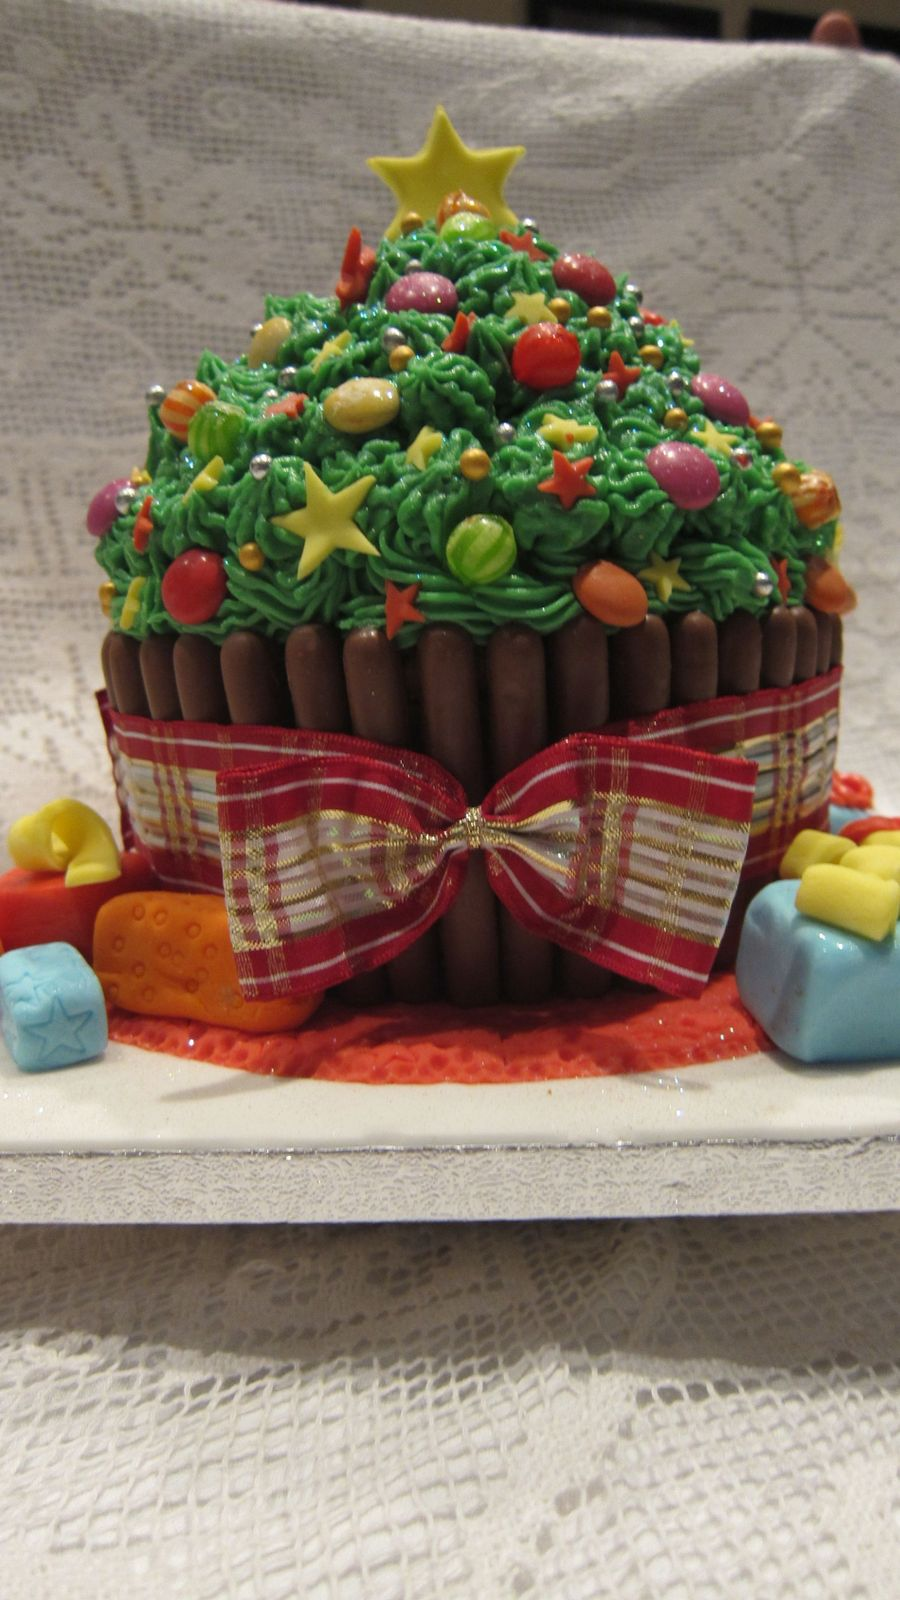 Christmas Cake (Giant Cup Cake) on Cake Central